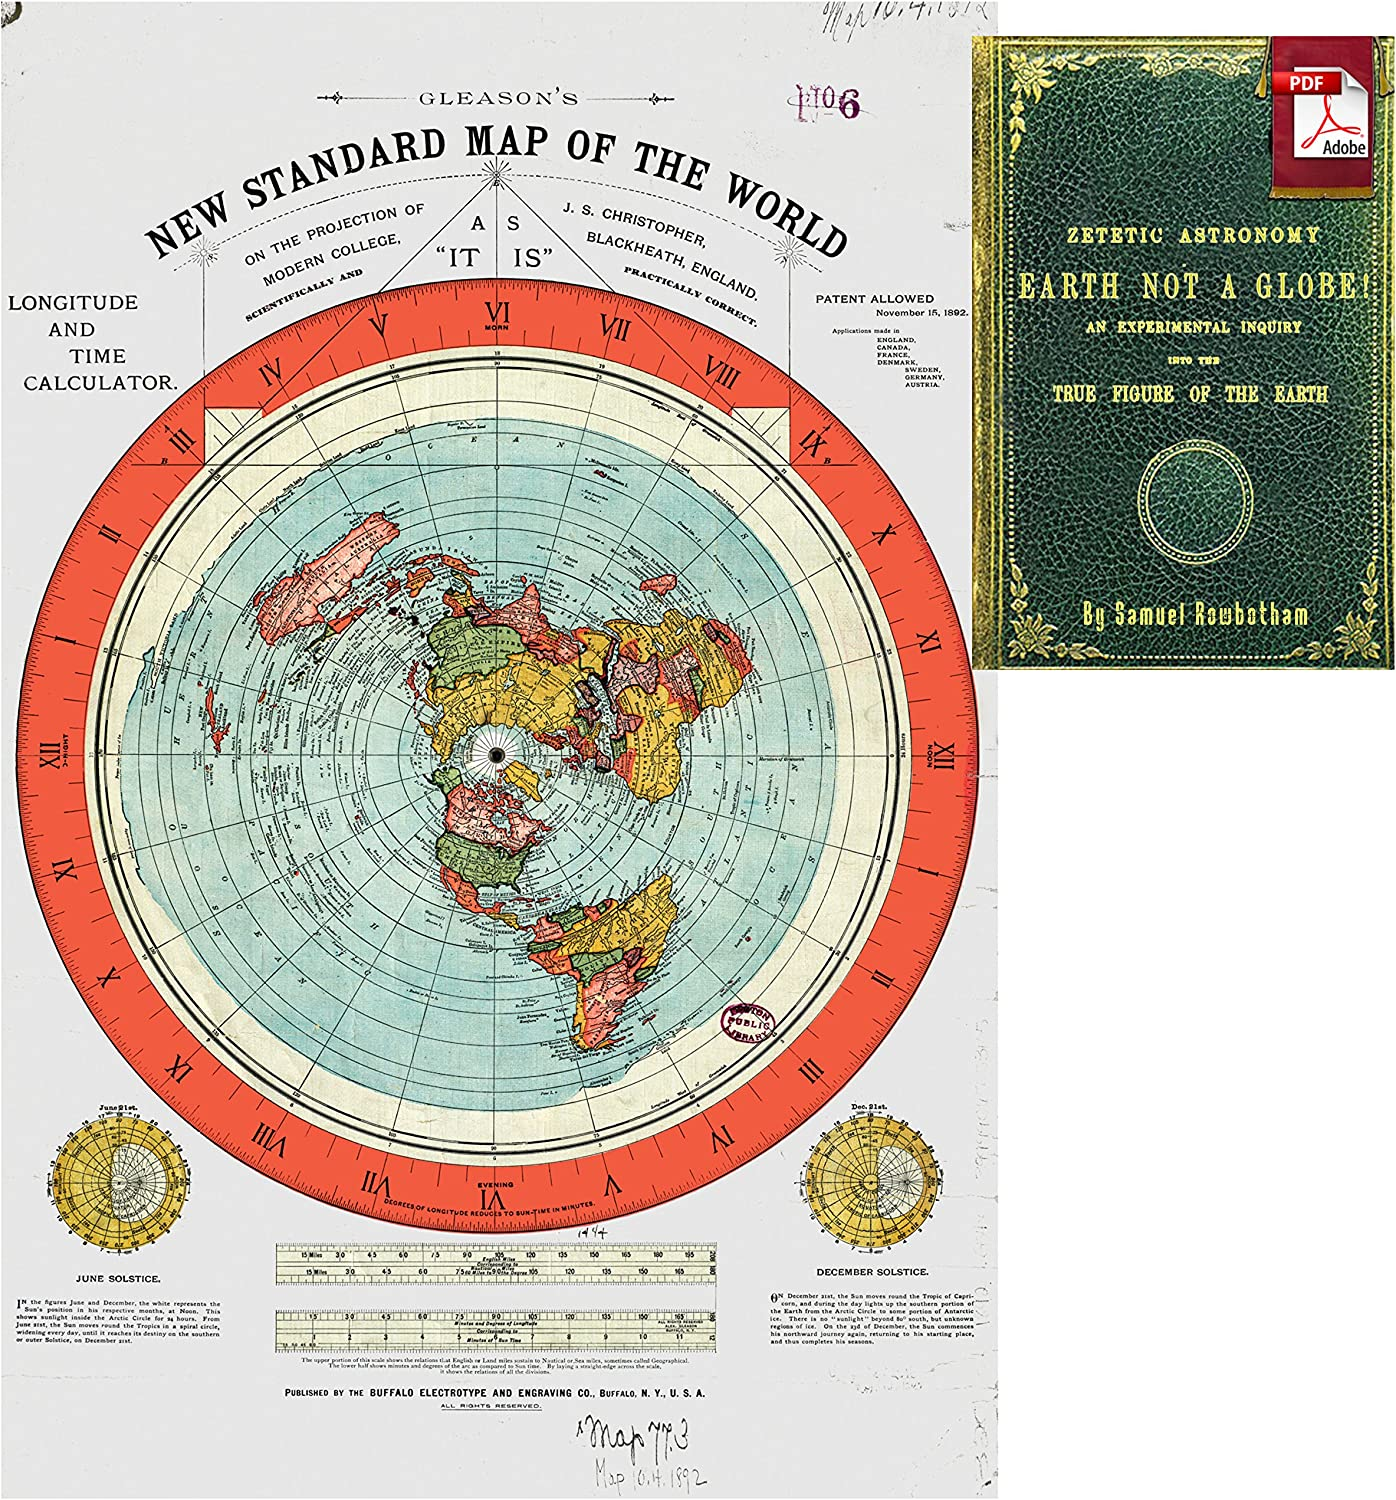 Gleason Flat Earth Map Amazon.com: Flat Earth Map   Gleason's New Standard Map of the